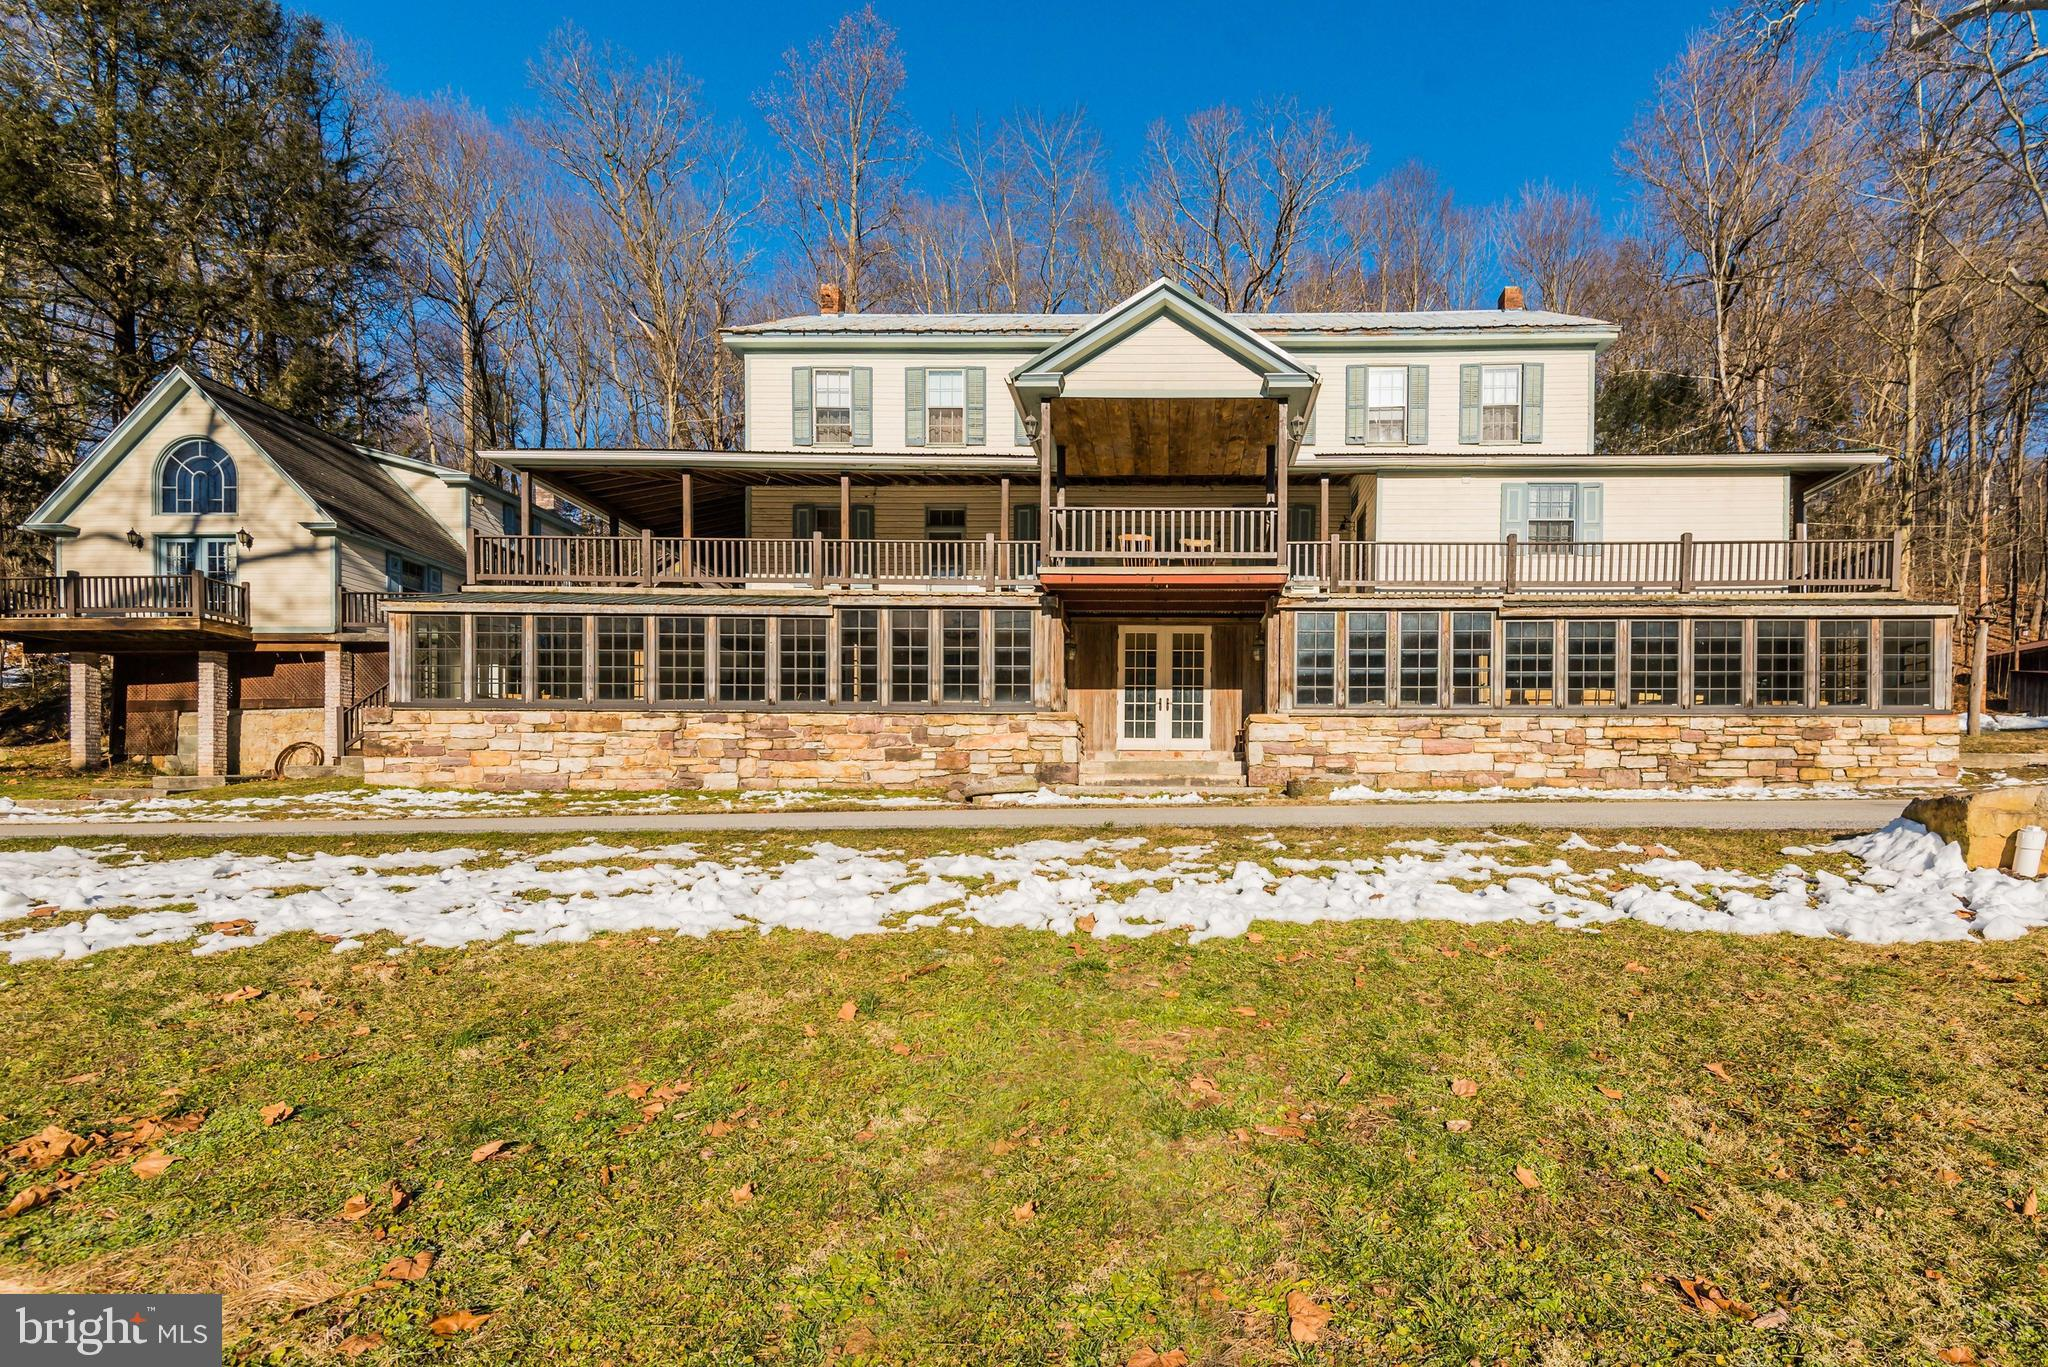 601 WARM SPRINGS ROAD, LANDISBURG, PA 17040